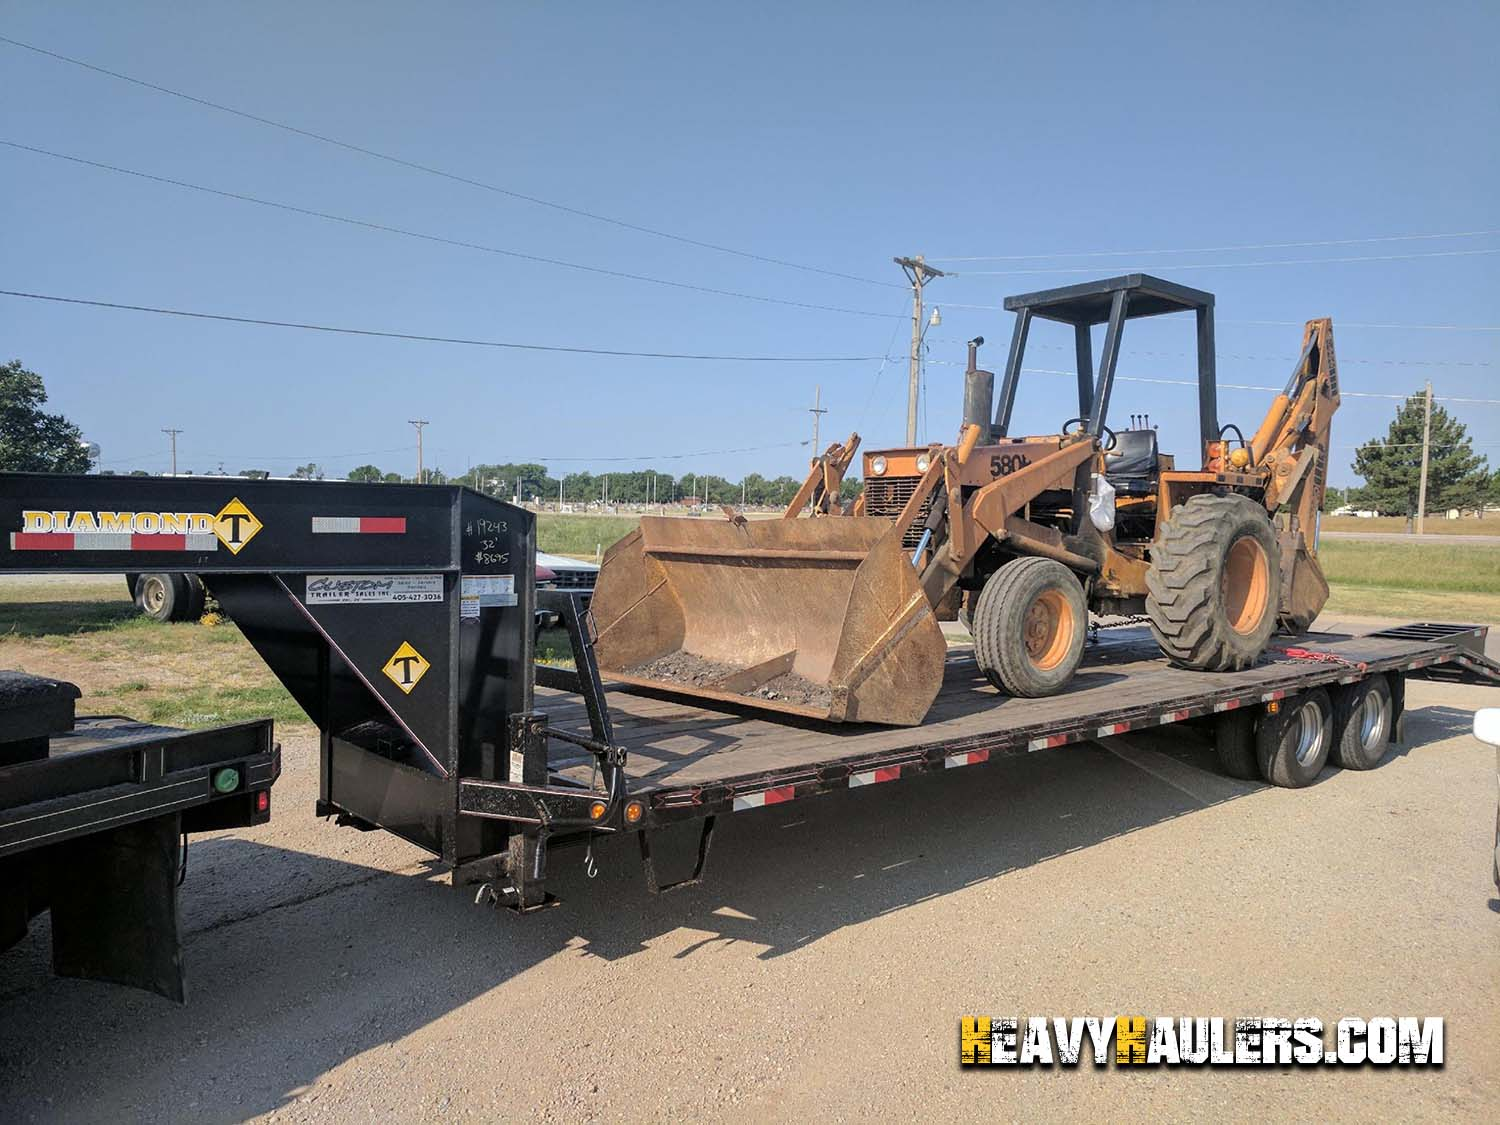 Backhoe Shipping Services | Heavy Haulers | (800) 908-6206